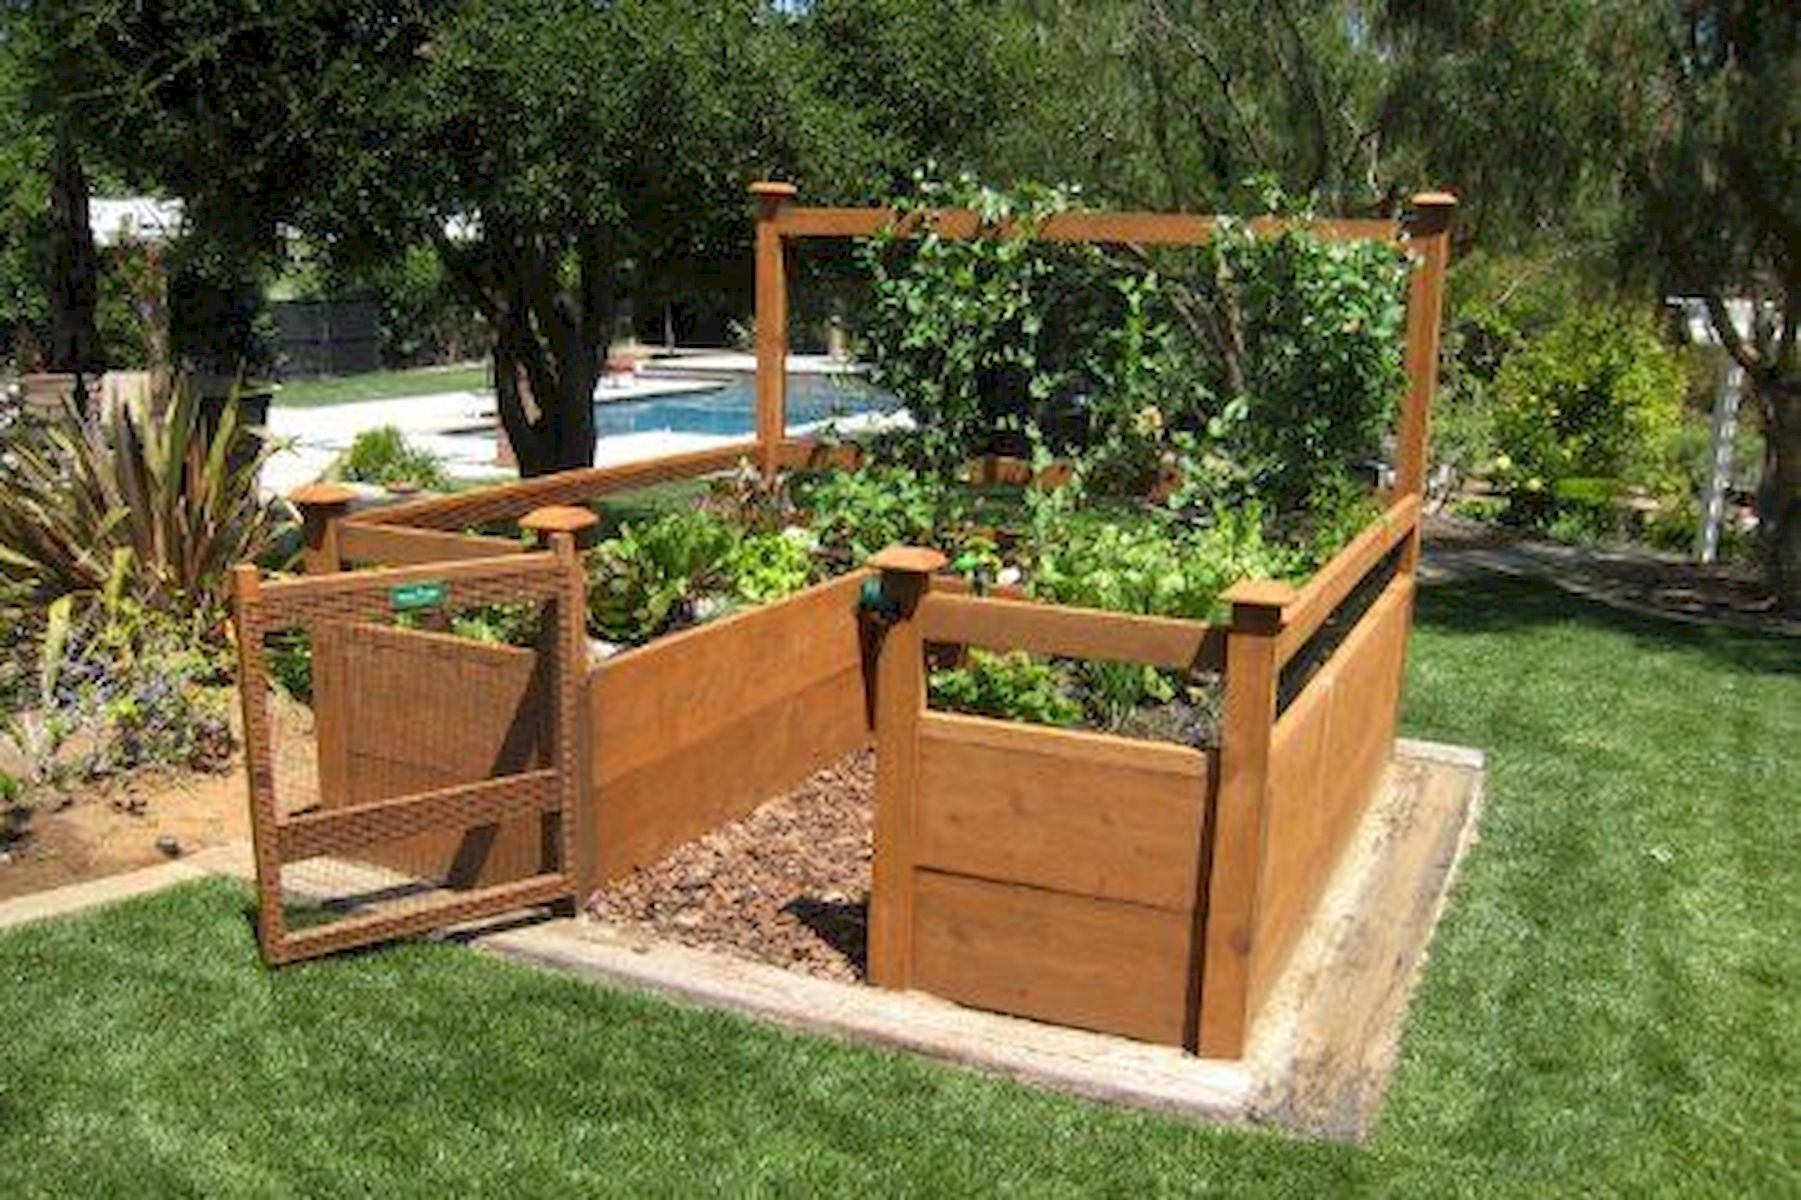 Garden Beds Design Ideas For Summer (36)